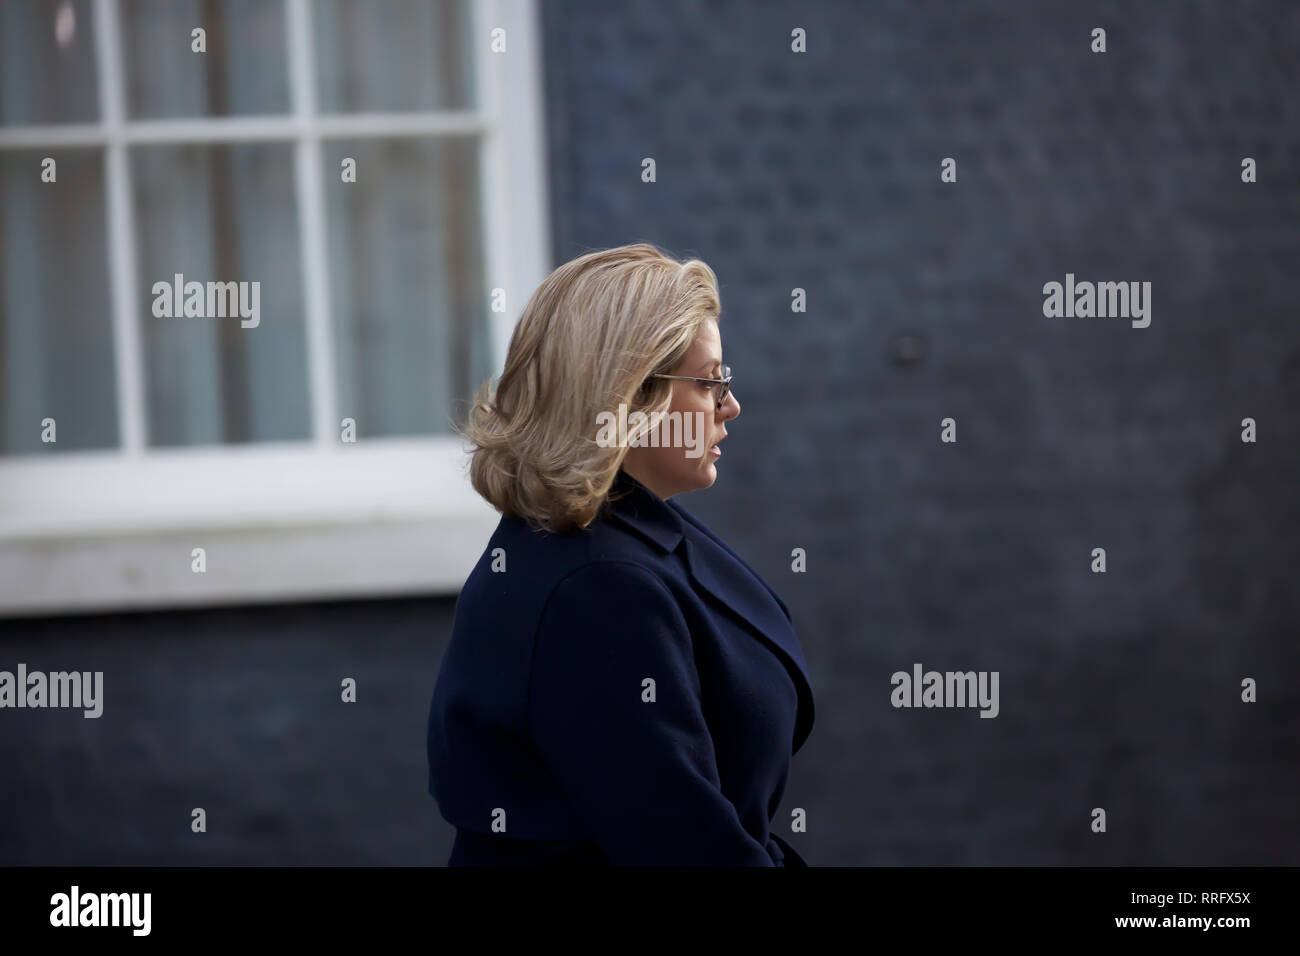 Penny Mordant Stock Photos & Penny Mordant Stock Images - Alamy